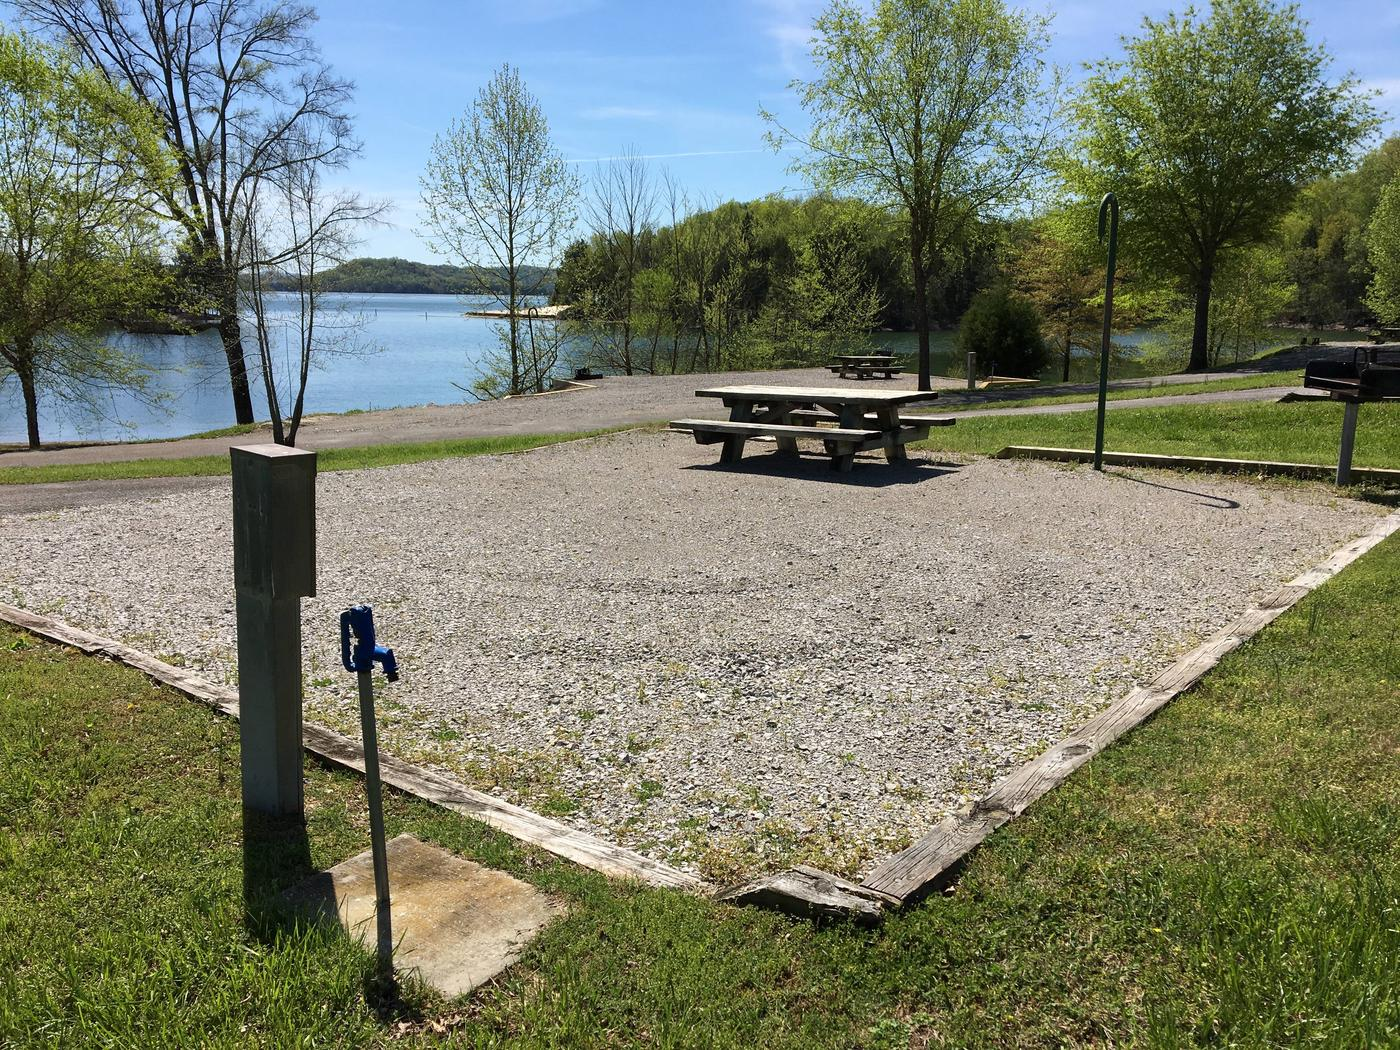 LILLYDALE CAMPGROUND SITE # 27